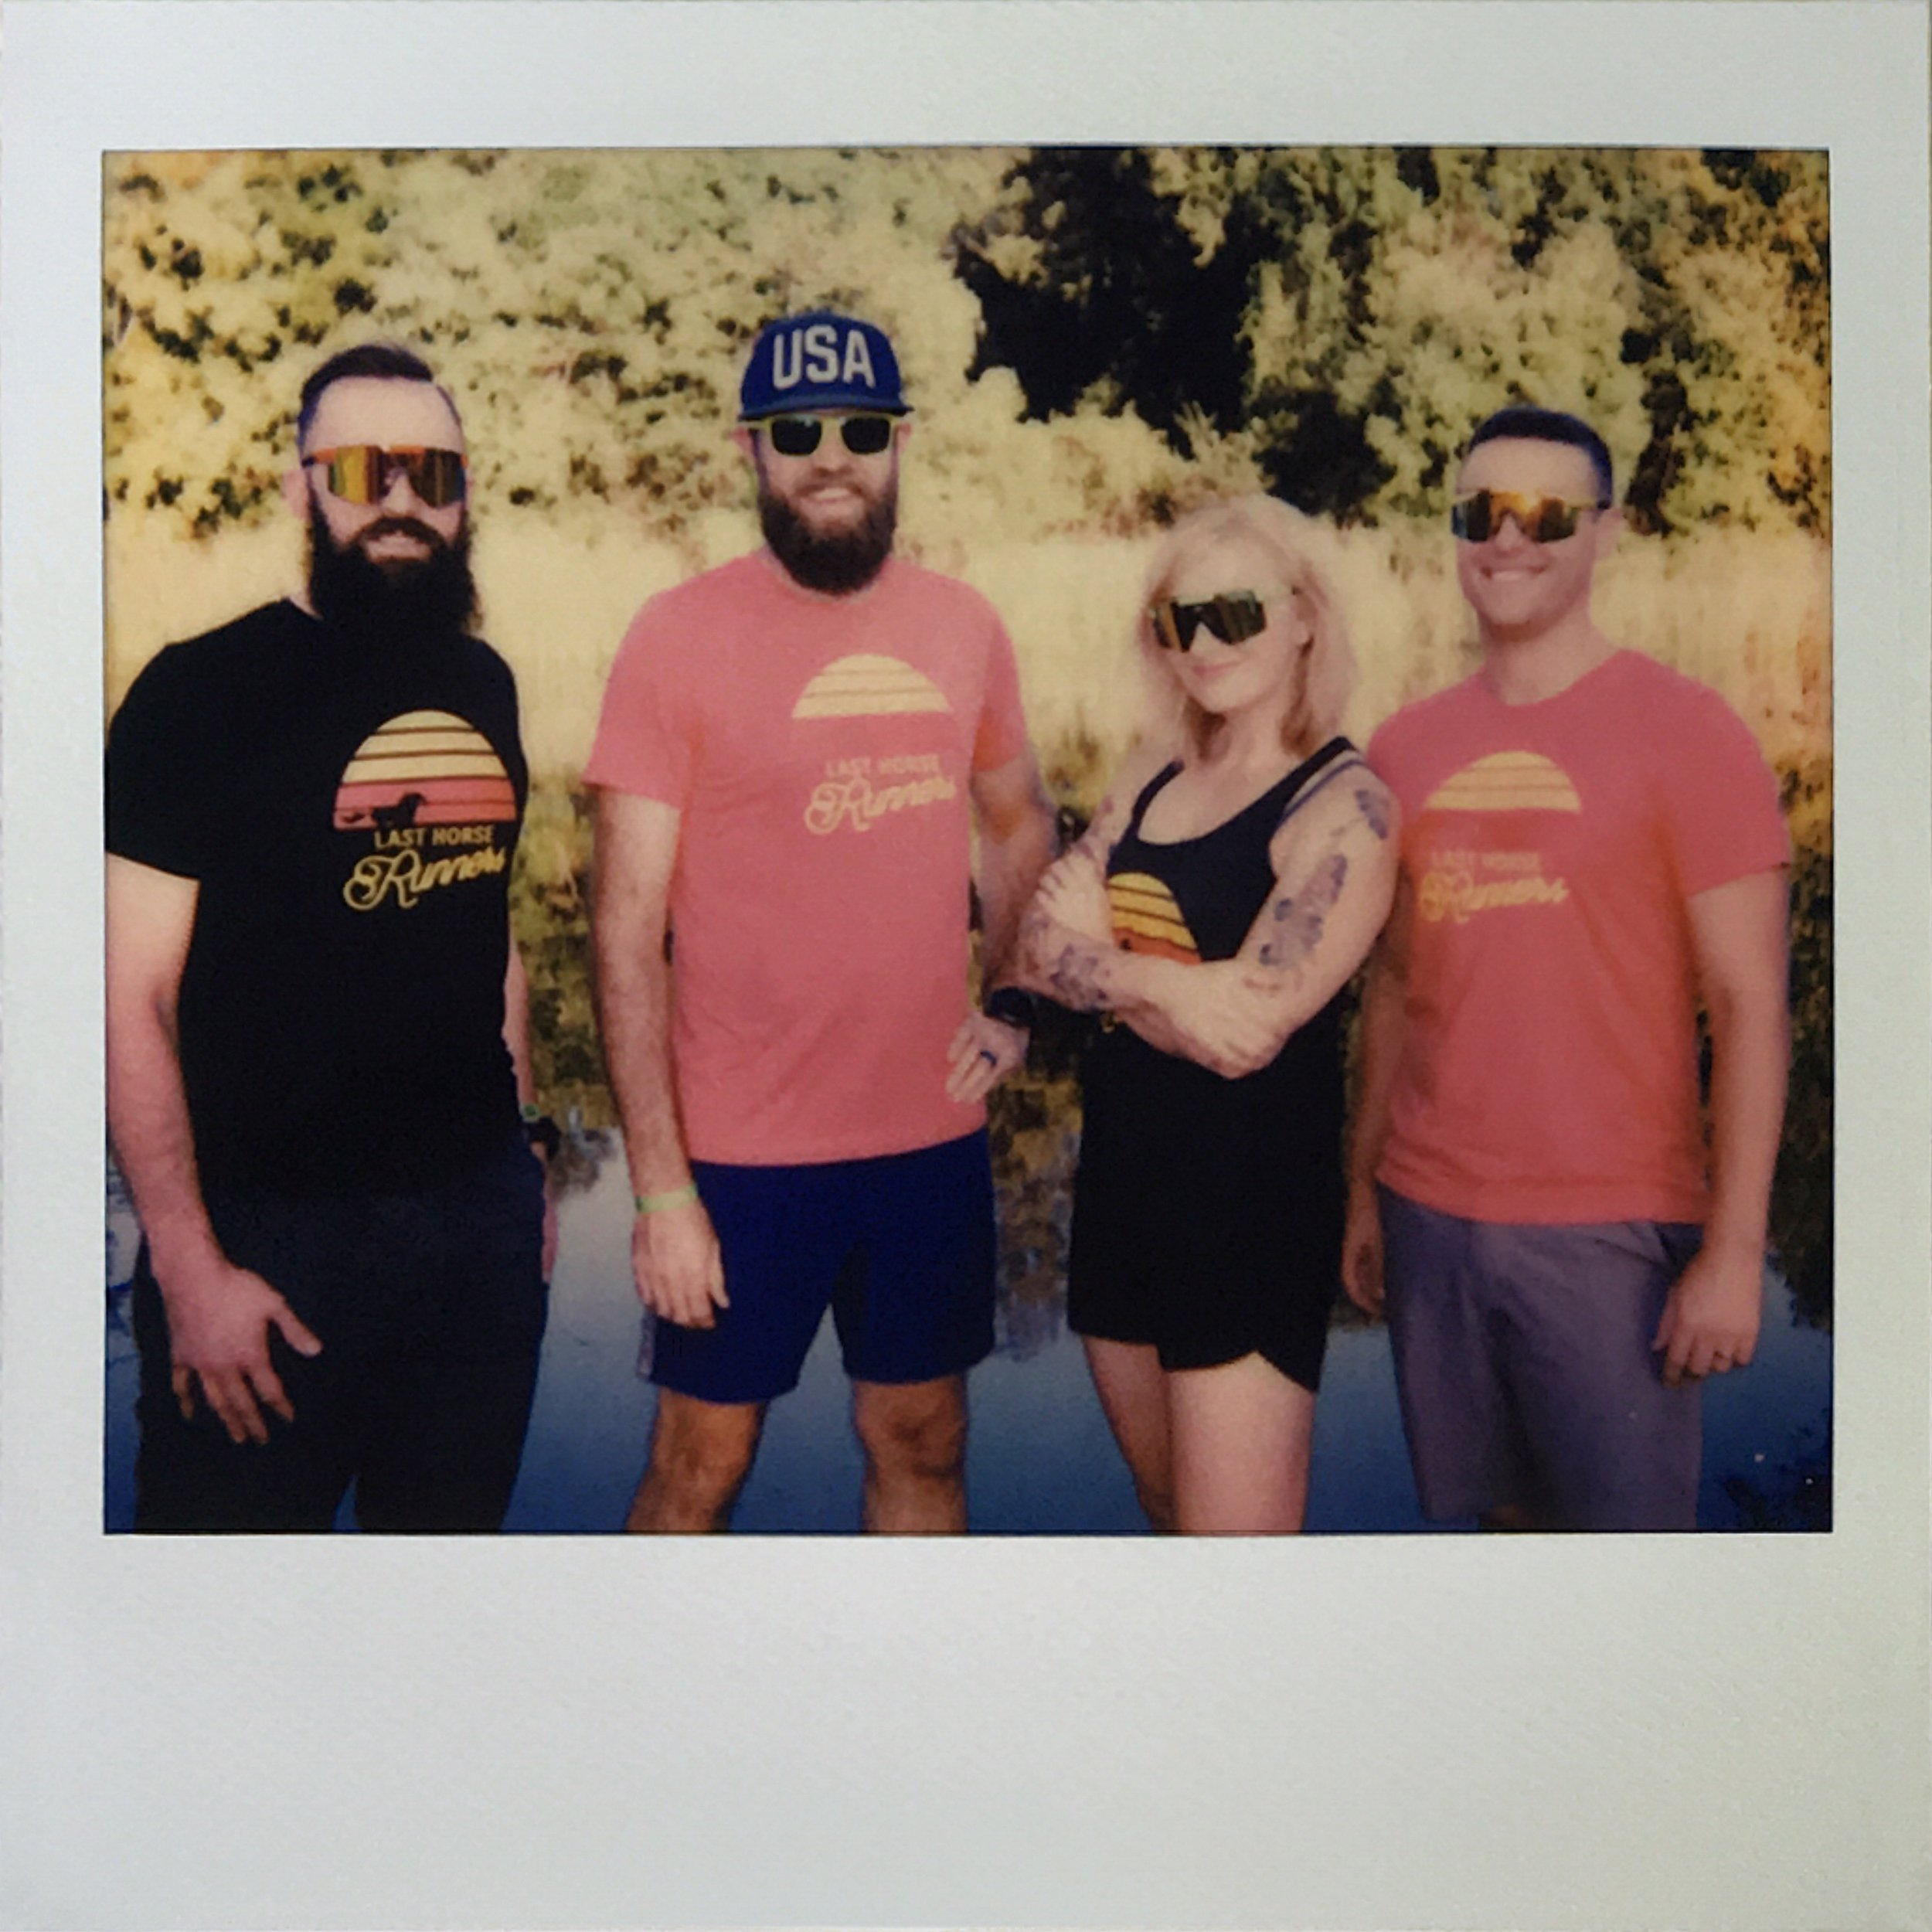 Two racers on the left, and two crew members to the right. The Last Horse Runners co-founders are ready to roll.   From Left to Right - Kurt, Eamonn, Kristin, Matt (me)